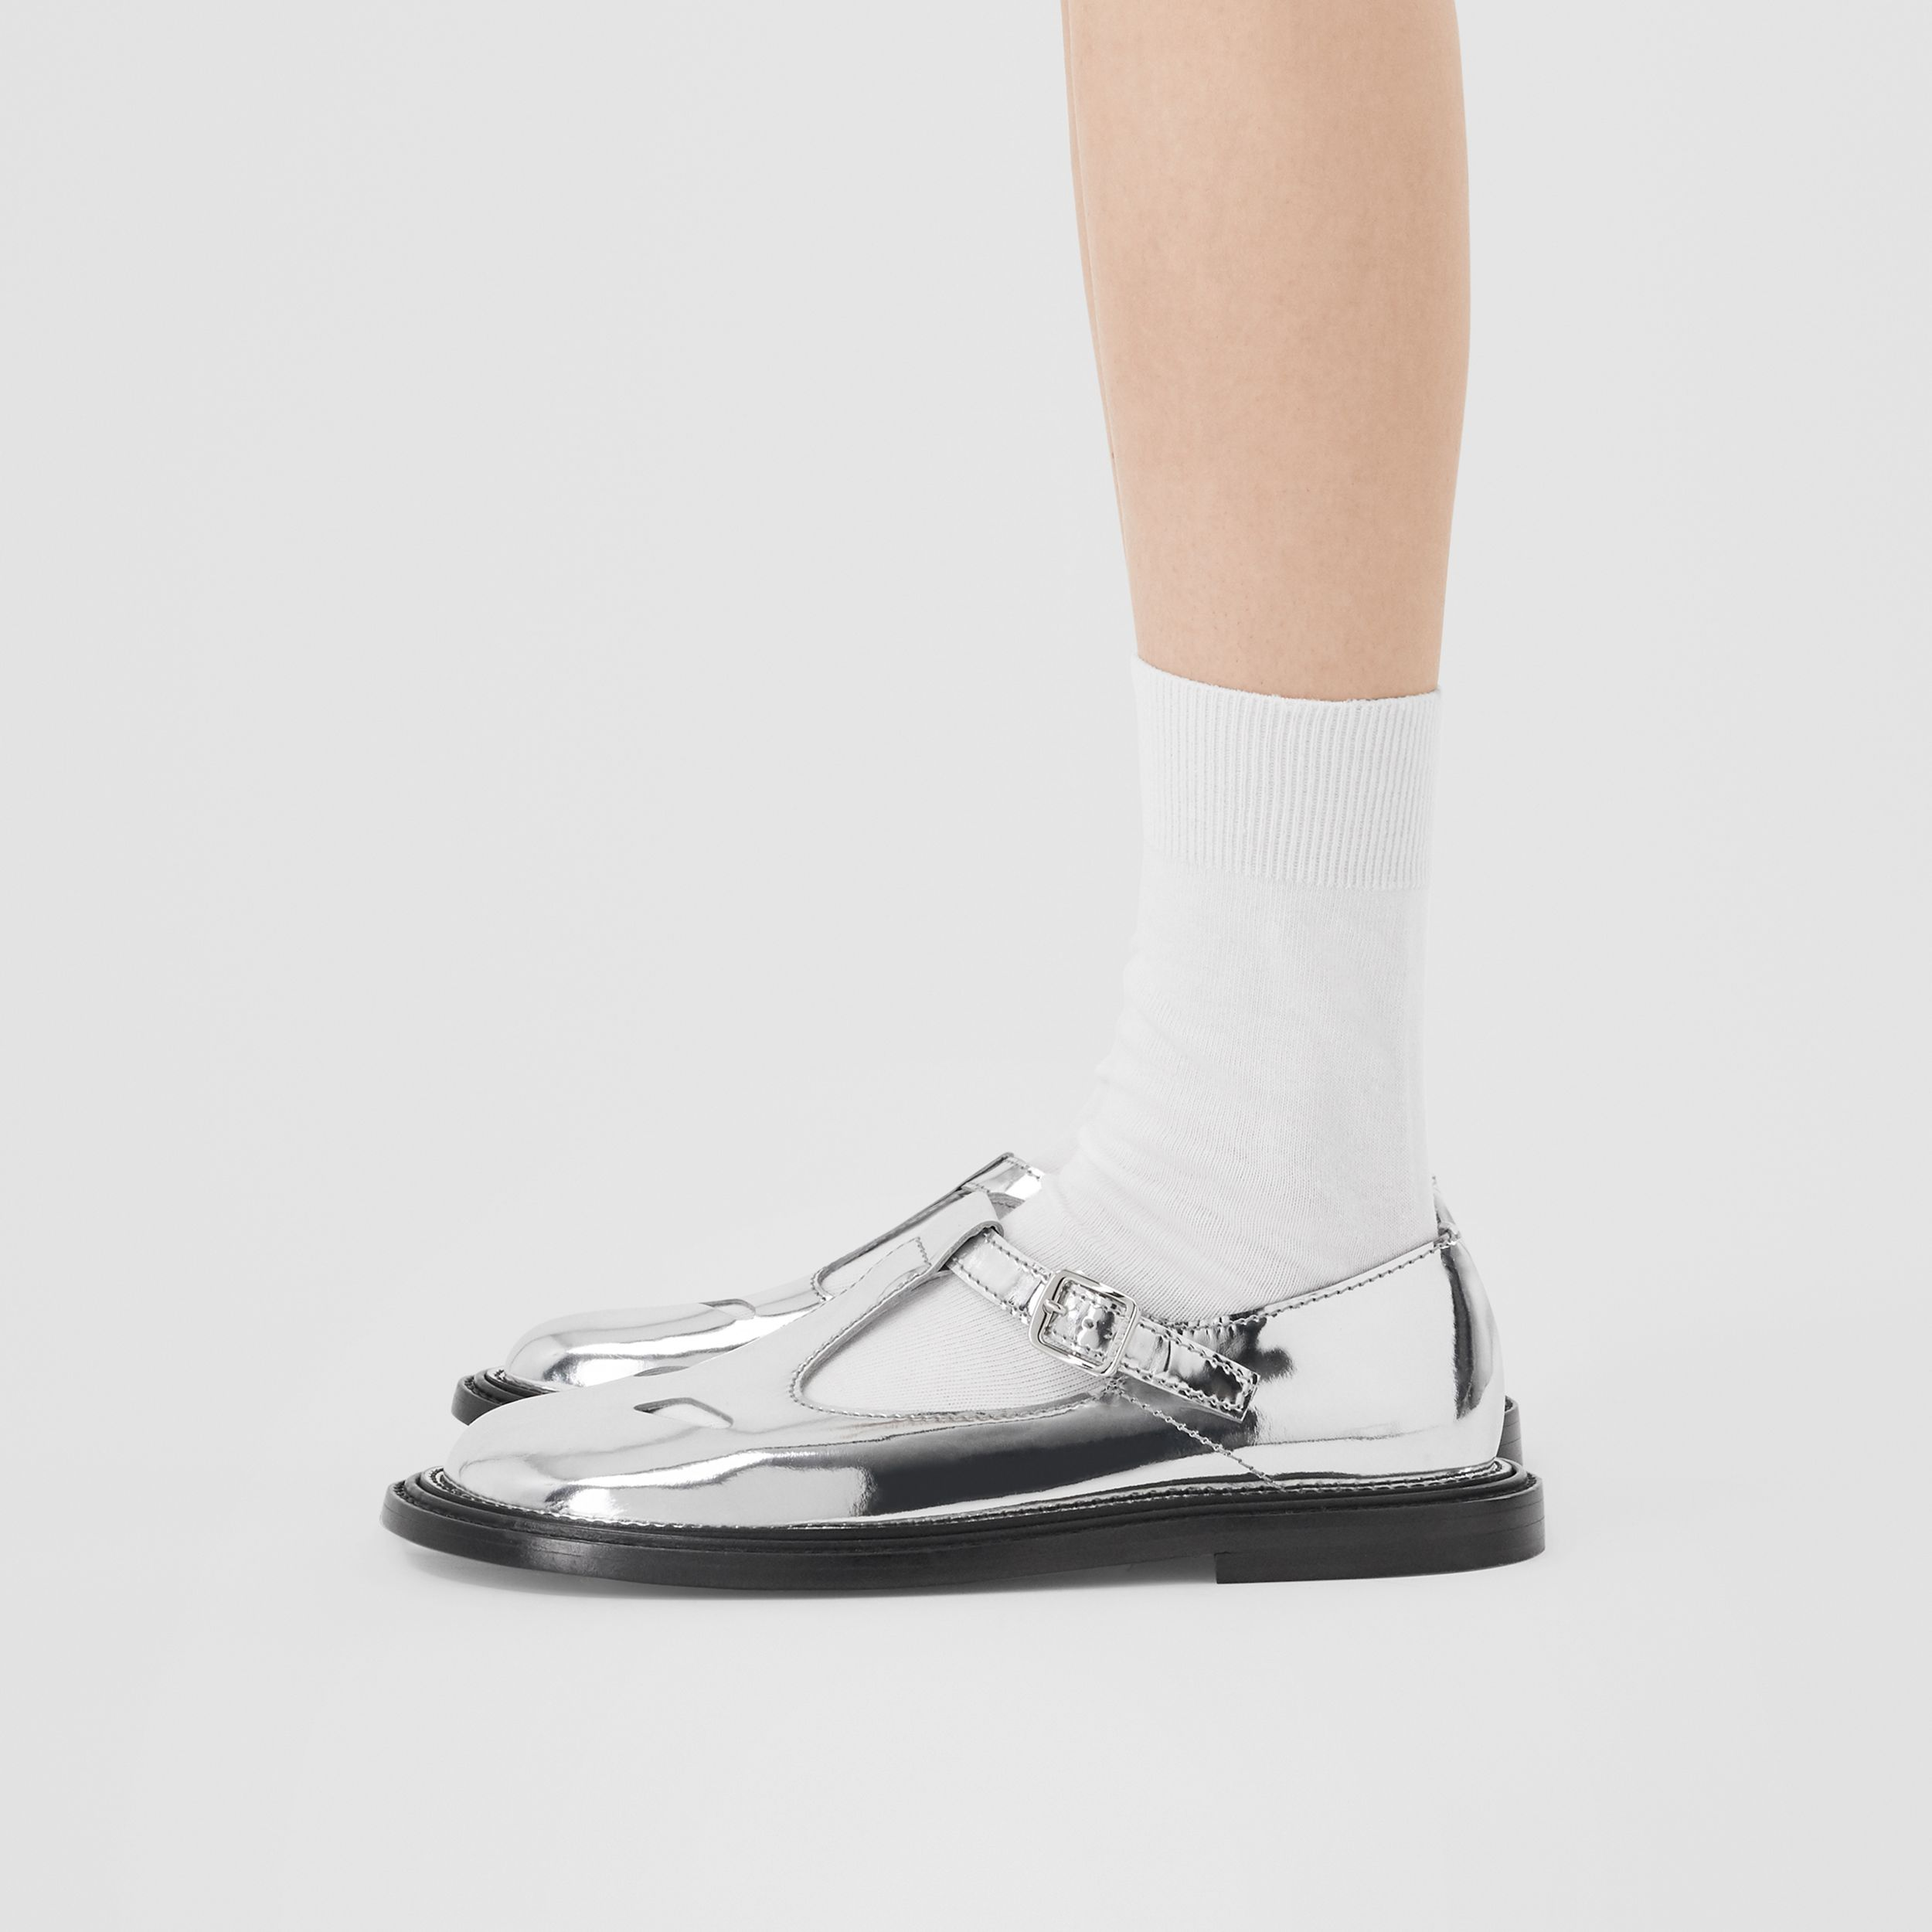 Metallic Patent Leather T-bar Shoes in Silver - Women | Burberry - 3